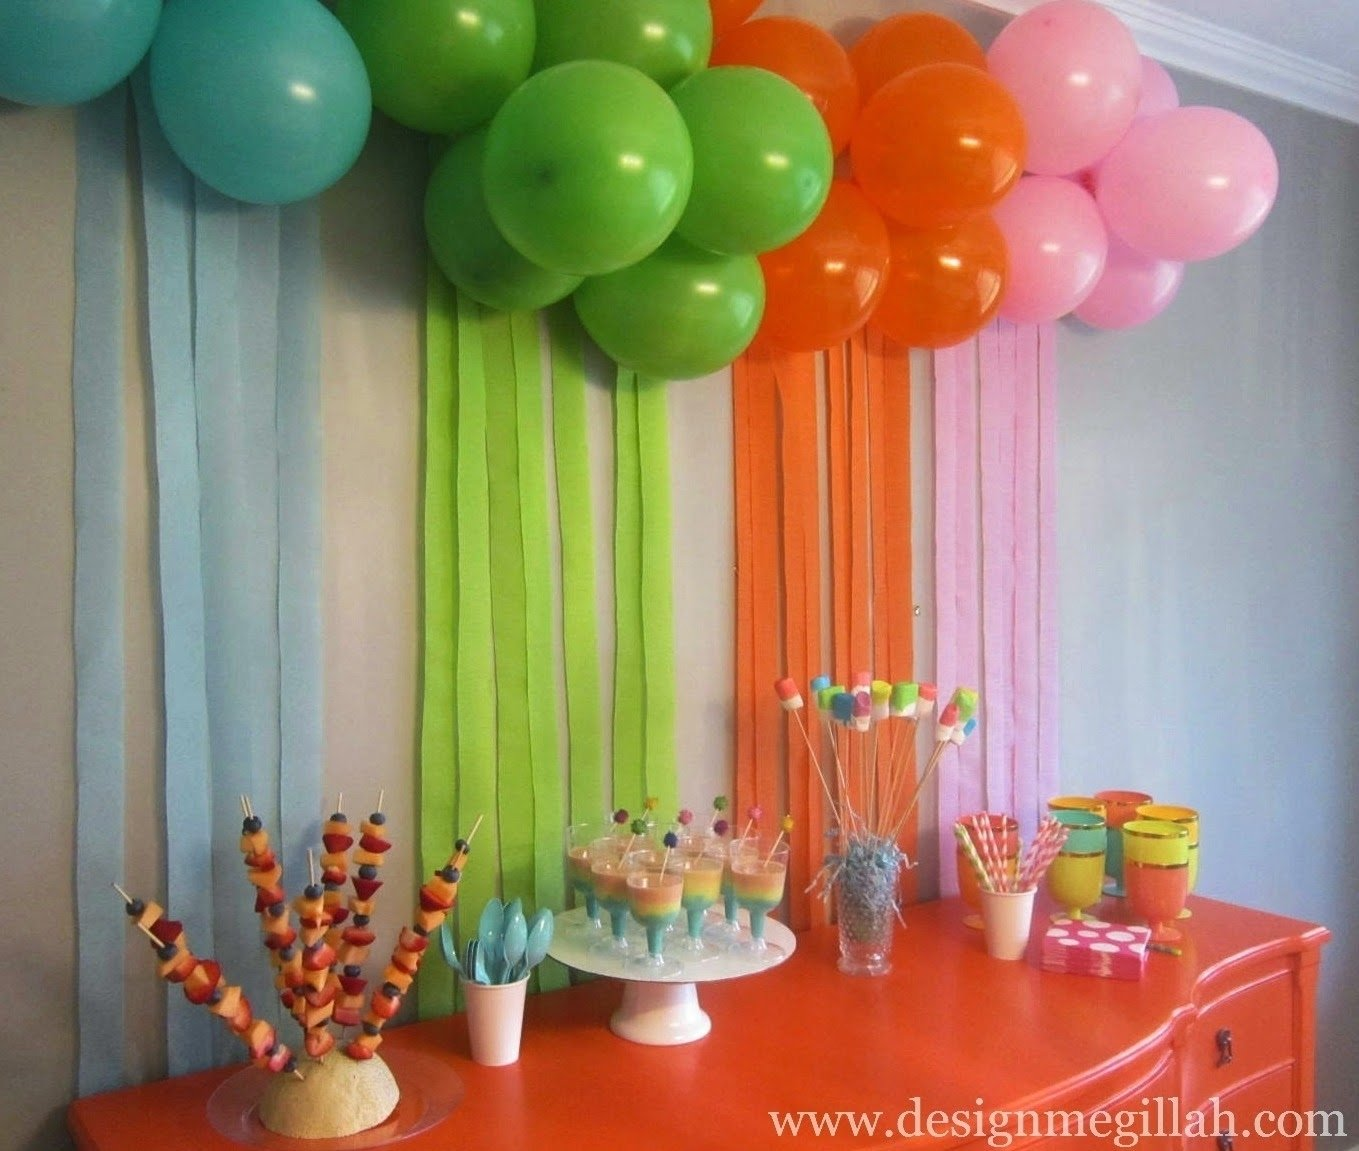 10 Lovable 9 Year Old Party Ideas strikingly 9 year old boy birthday party ideas at home home designs 1 2020